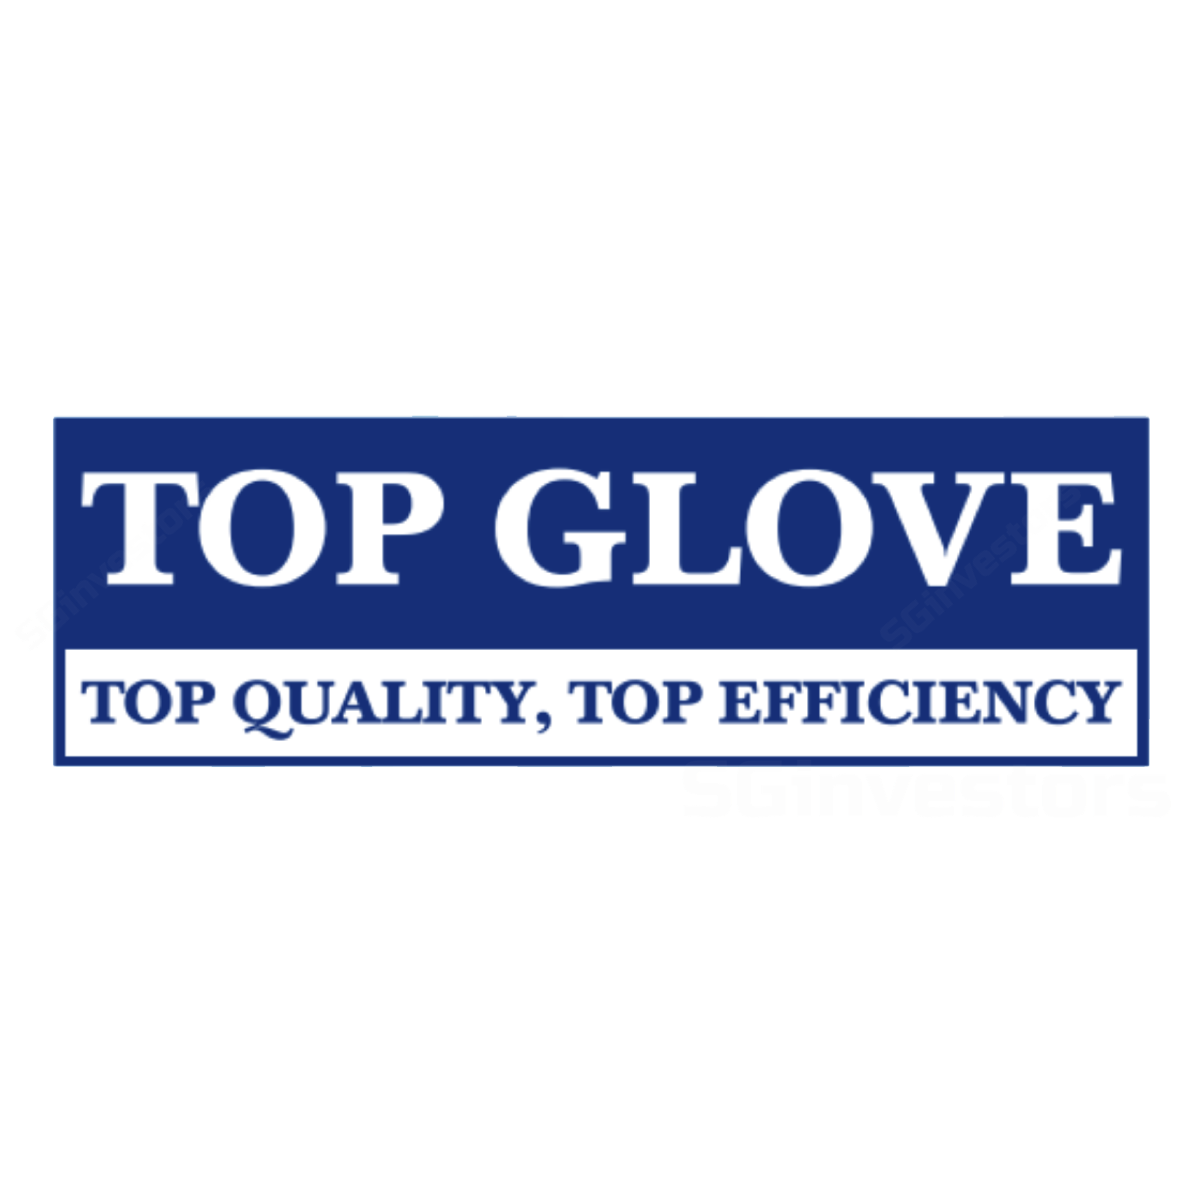 Top Glove (TOPG MK) - UOB Kay Hian 2017-11-27: Aspiring To Lead In Surgical Glove Space